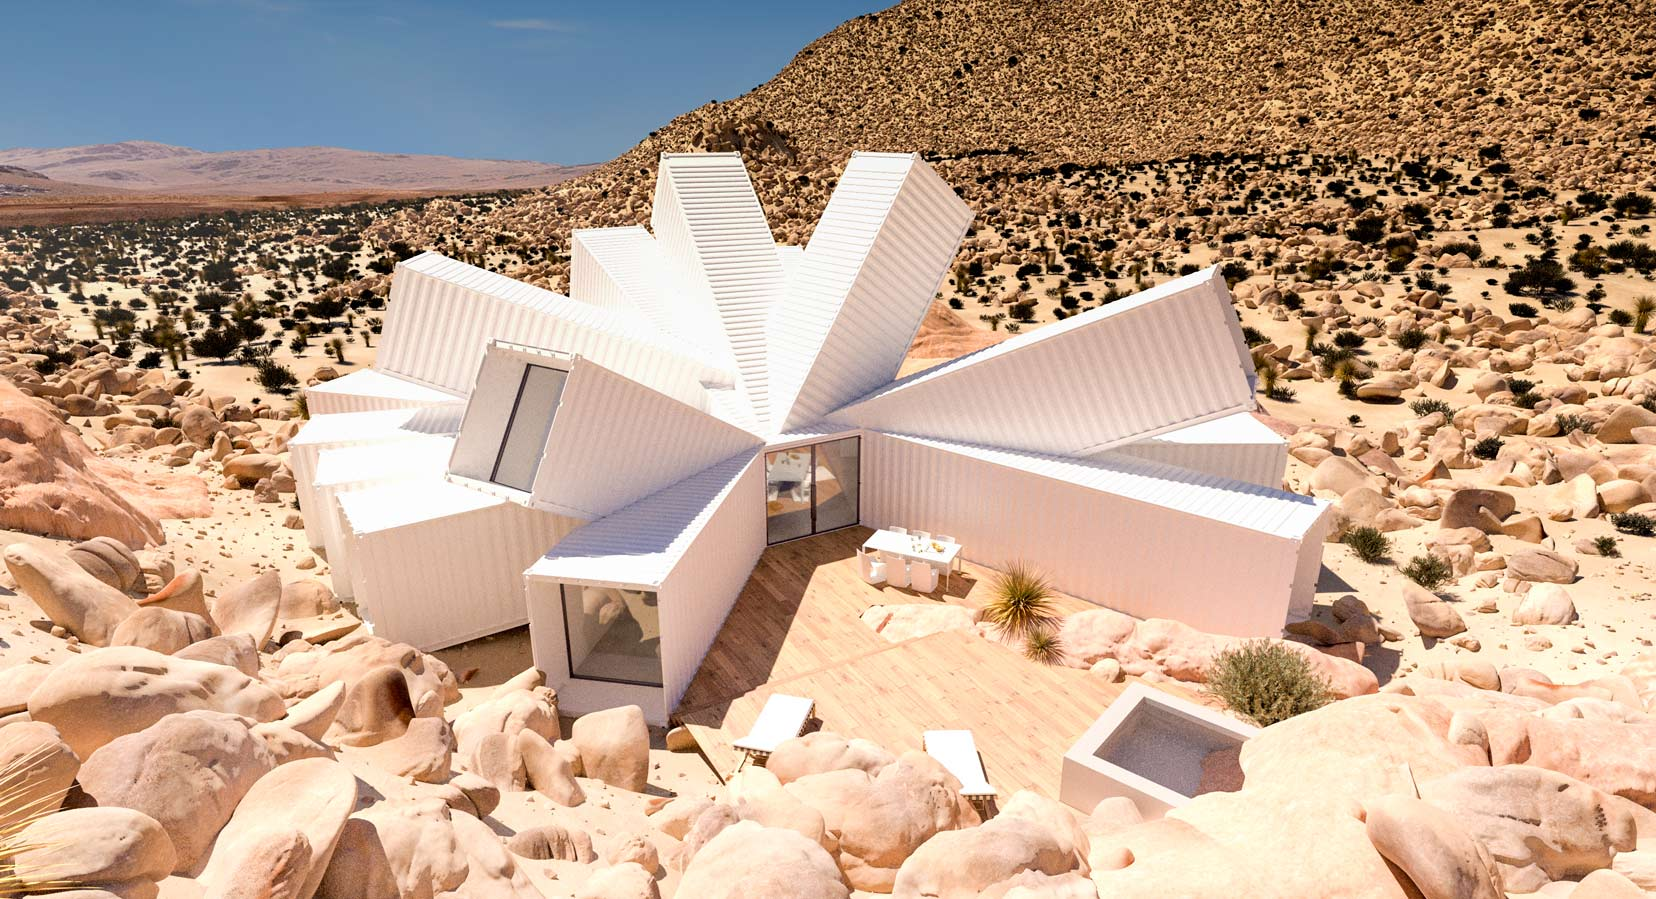 James Whitaker Creates Home In The Desert Made Out Of Shipping Containers